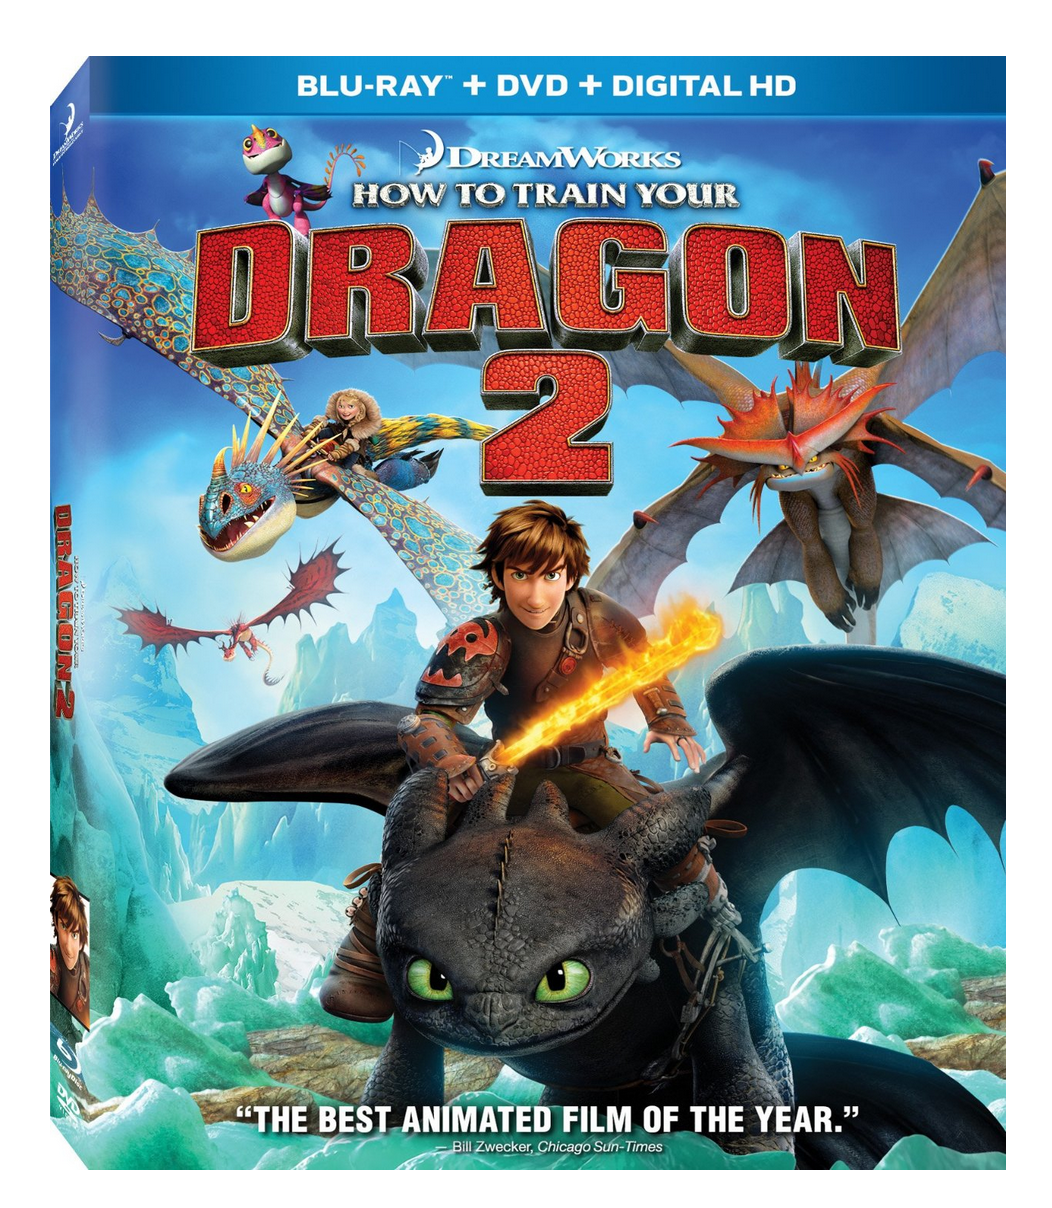 How To Train Your Dragon 2 on Blu-ray + DVD + Digital HD Only $9.99!